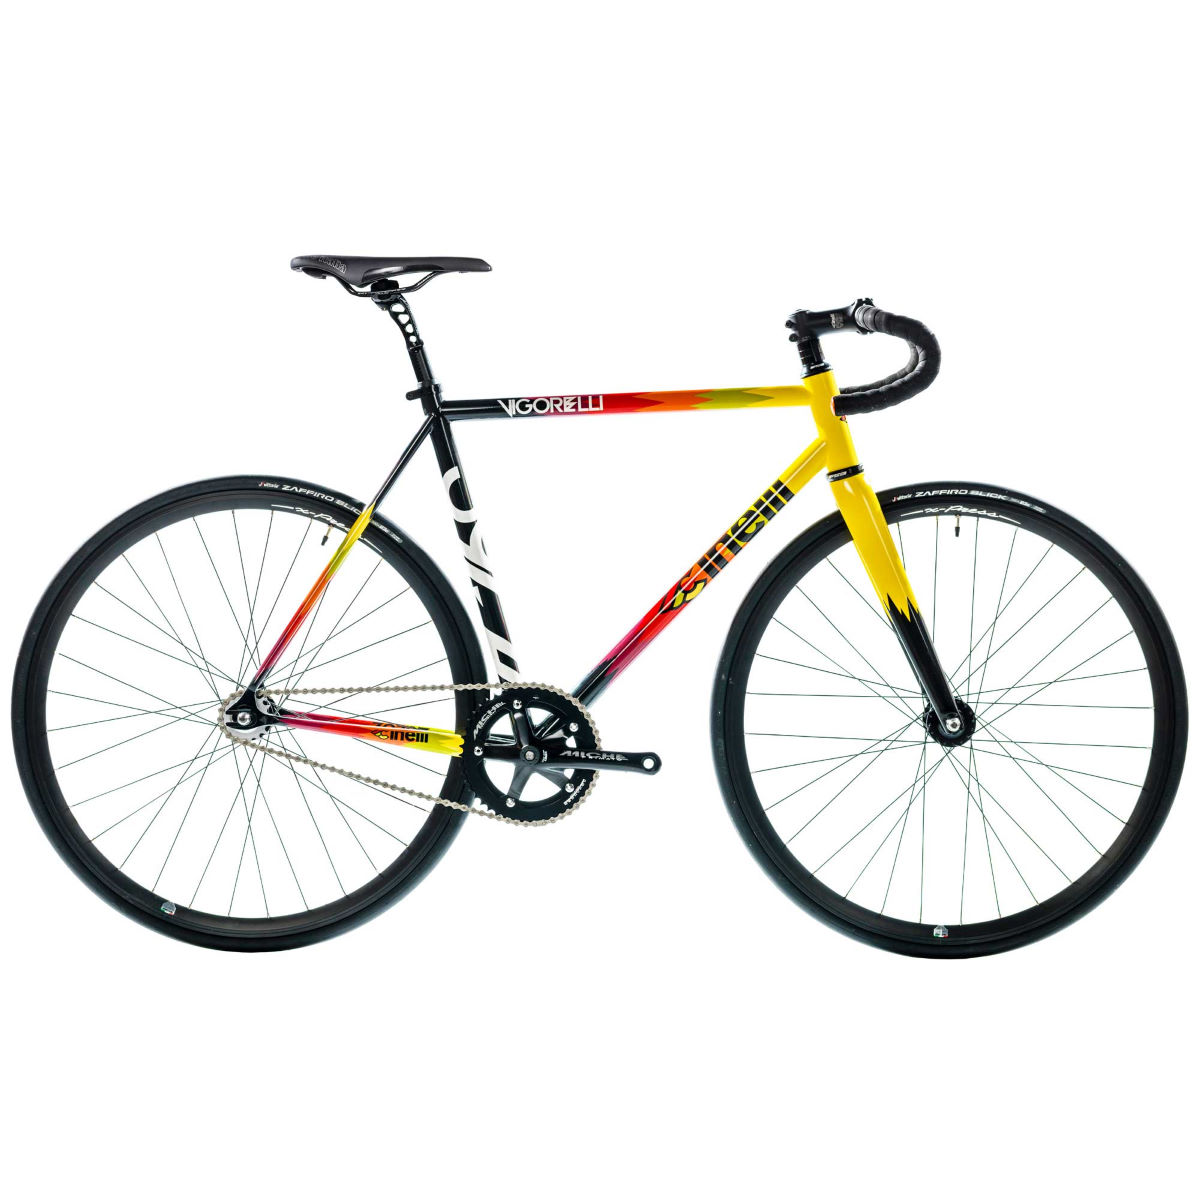 Vélo Cinelli Vigorelli (acier, single speed, 2017) - M Stock Bike White/Yellow Single speed